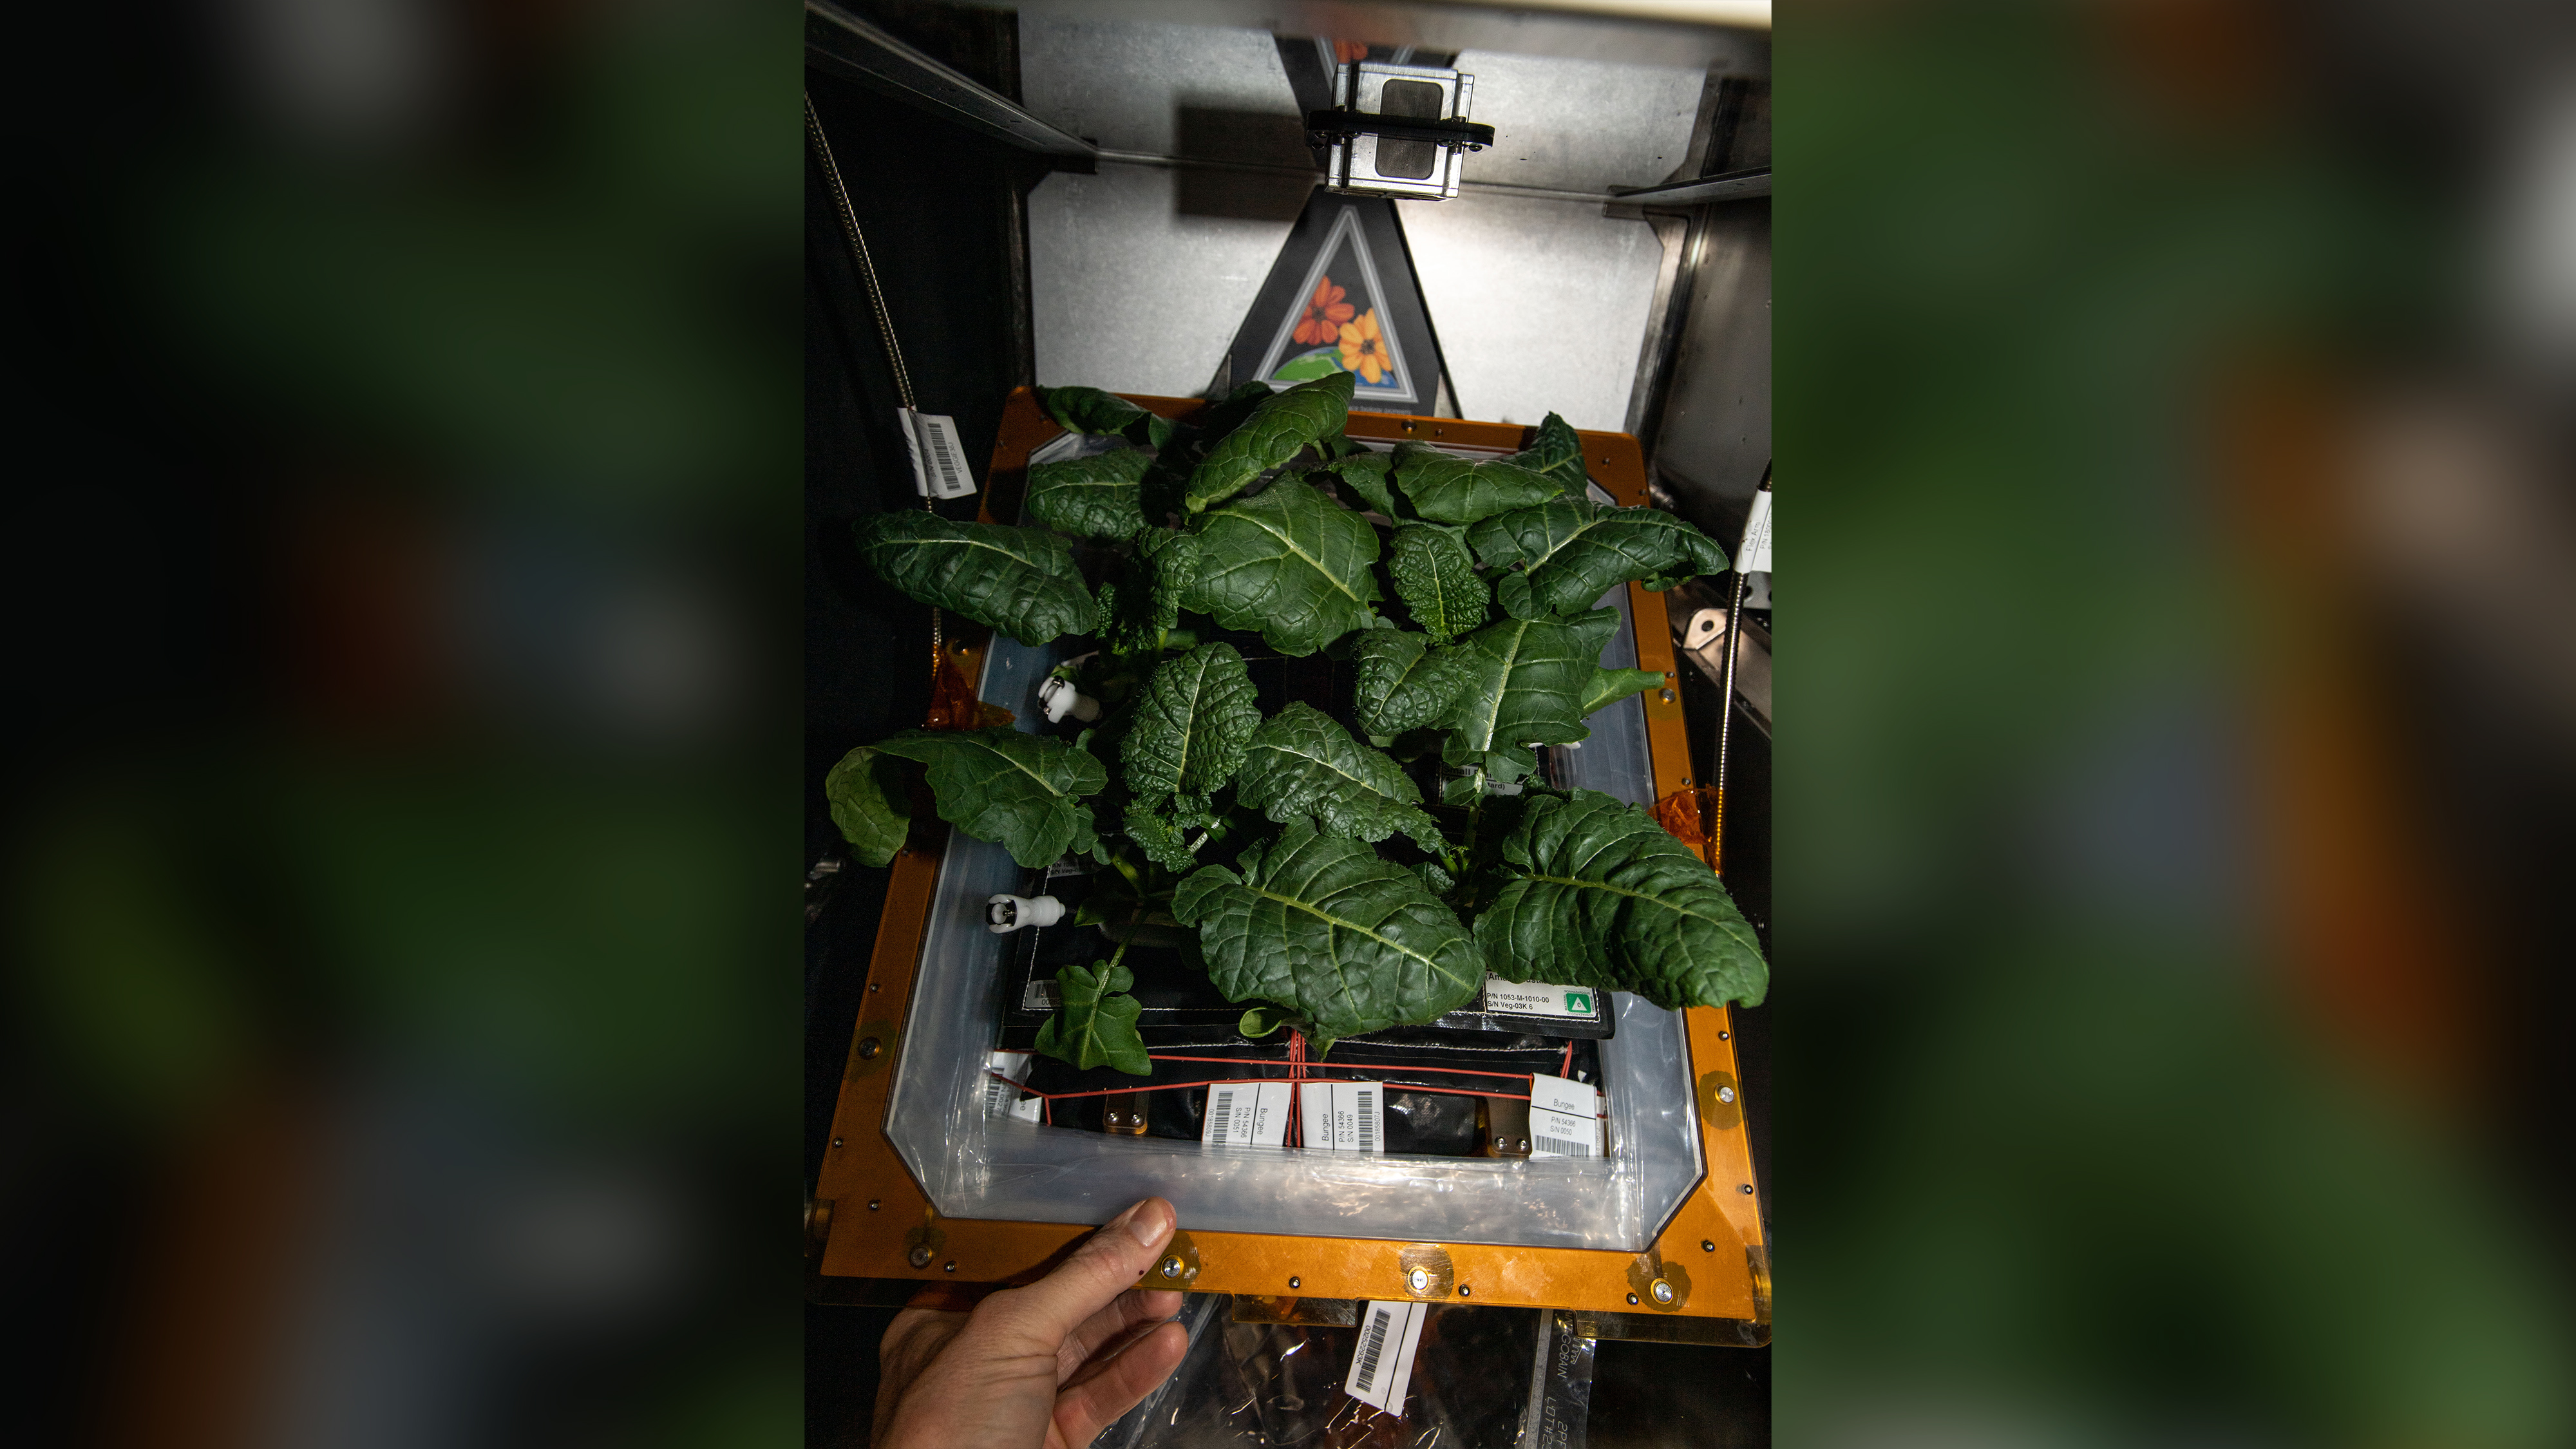 Previously unknown bacteria discovered on the space station could help grow plants